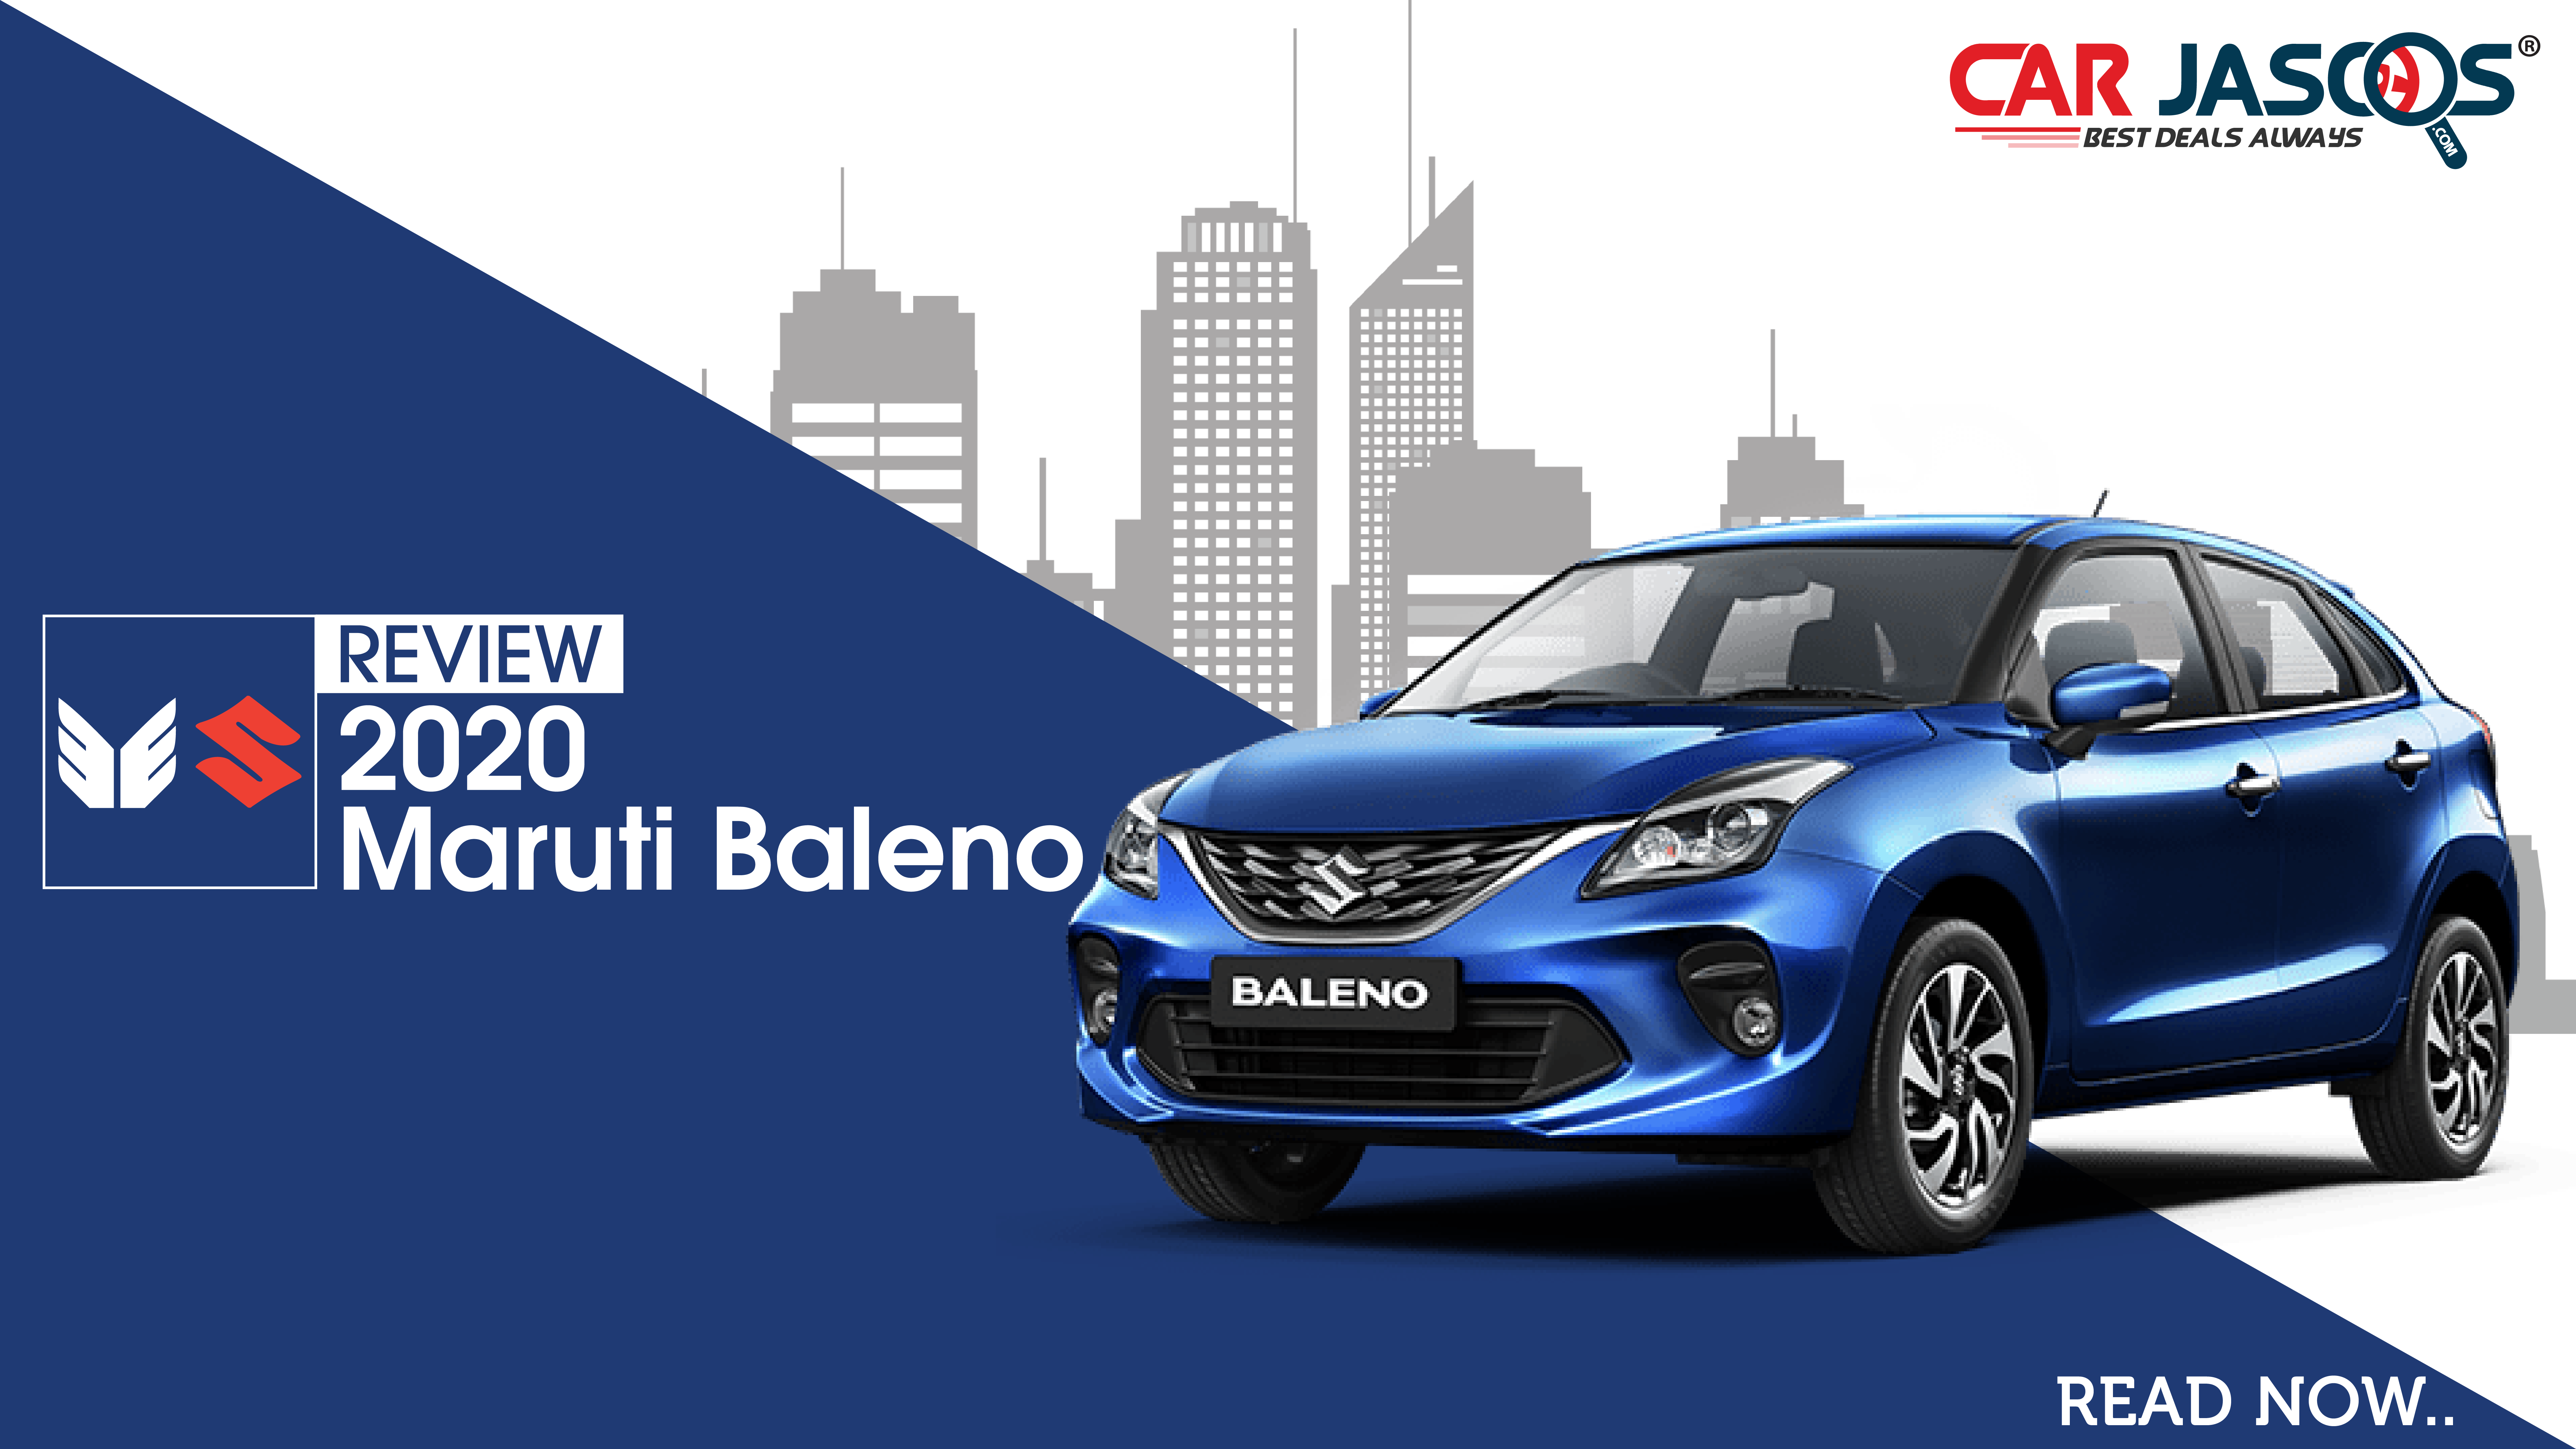 Maruti Suzuki Baleno Review Prices Onine